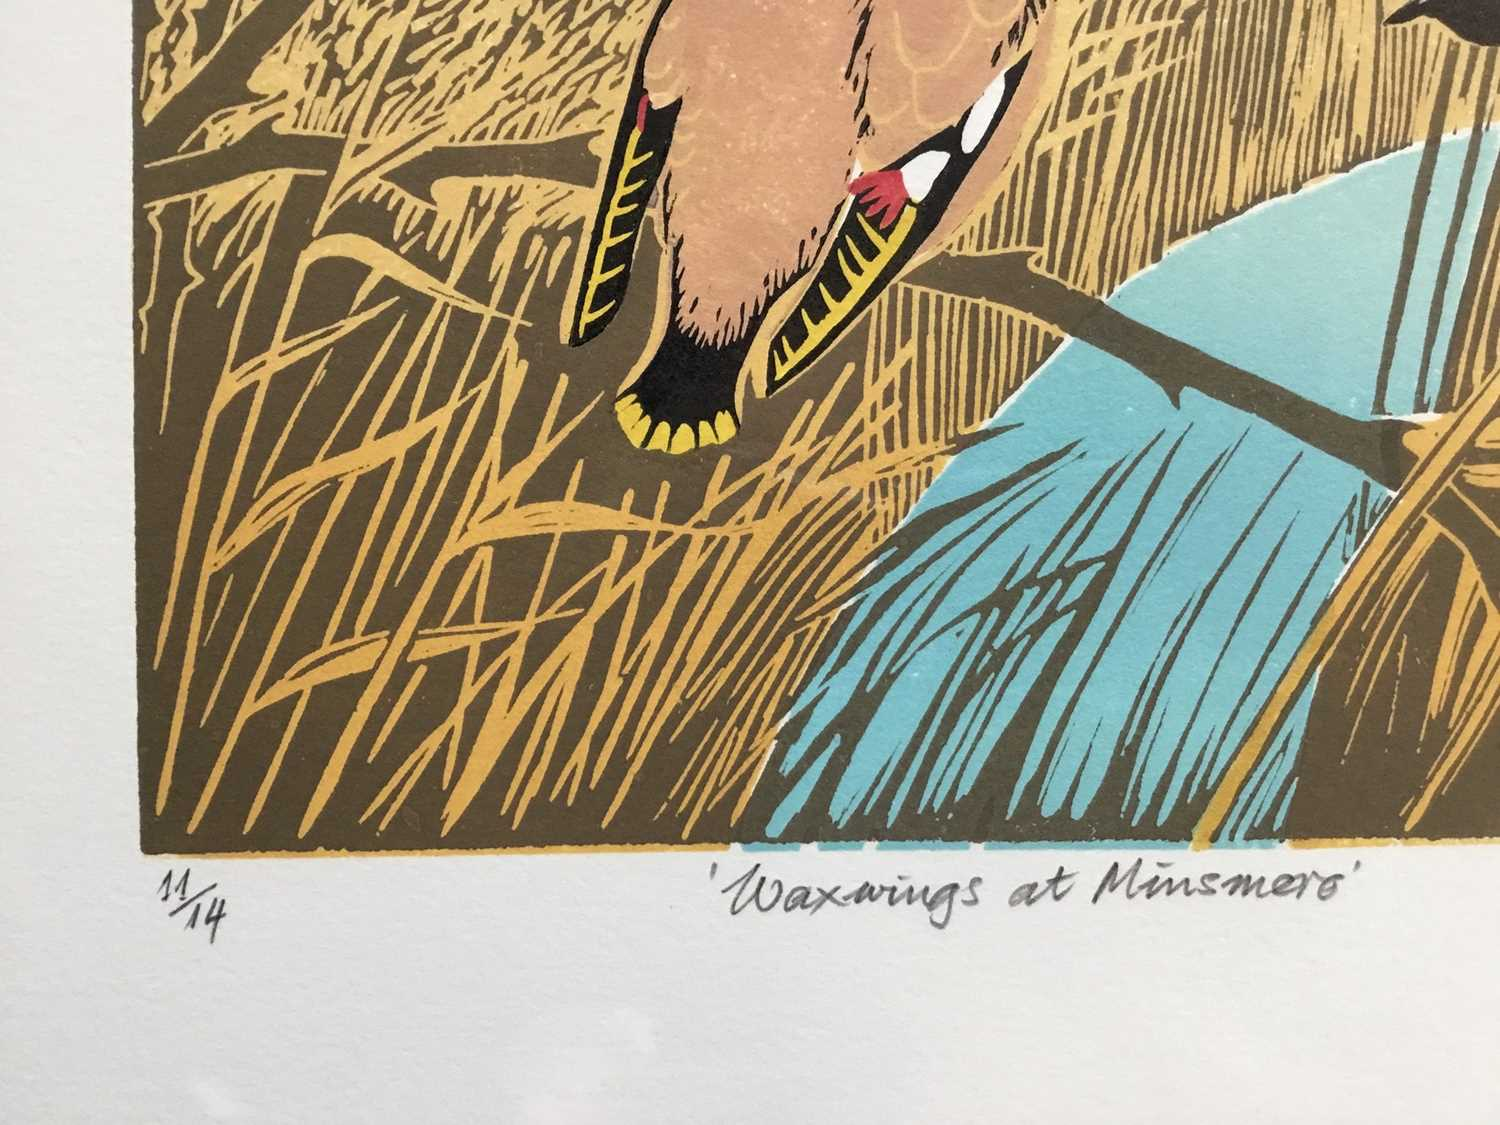 Penny Berry Paterson (1941-2021) colour linocut print, Waxwings at Minsmere, signed and numbered 11/ - Image 3 of 3